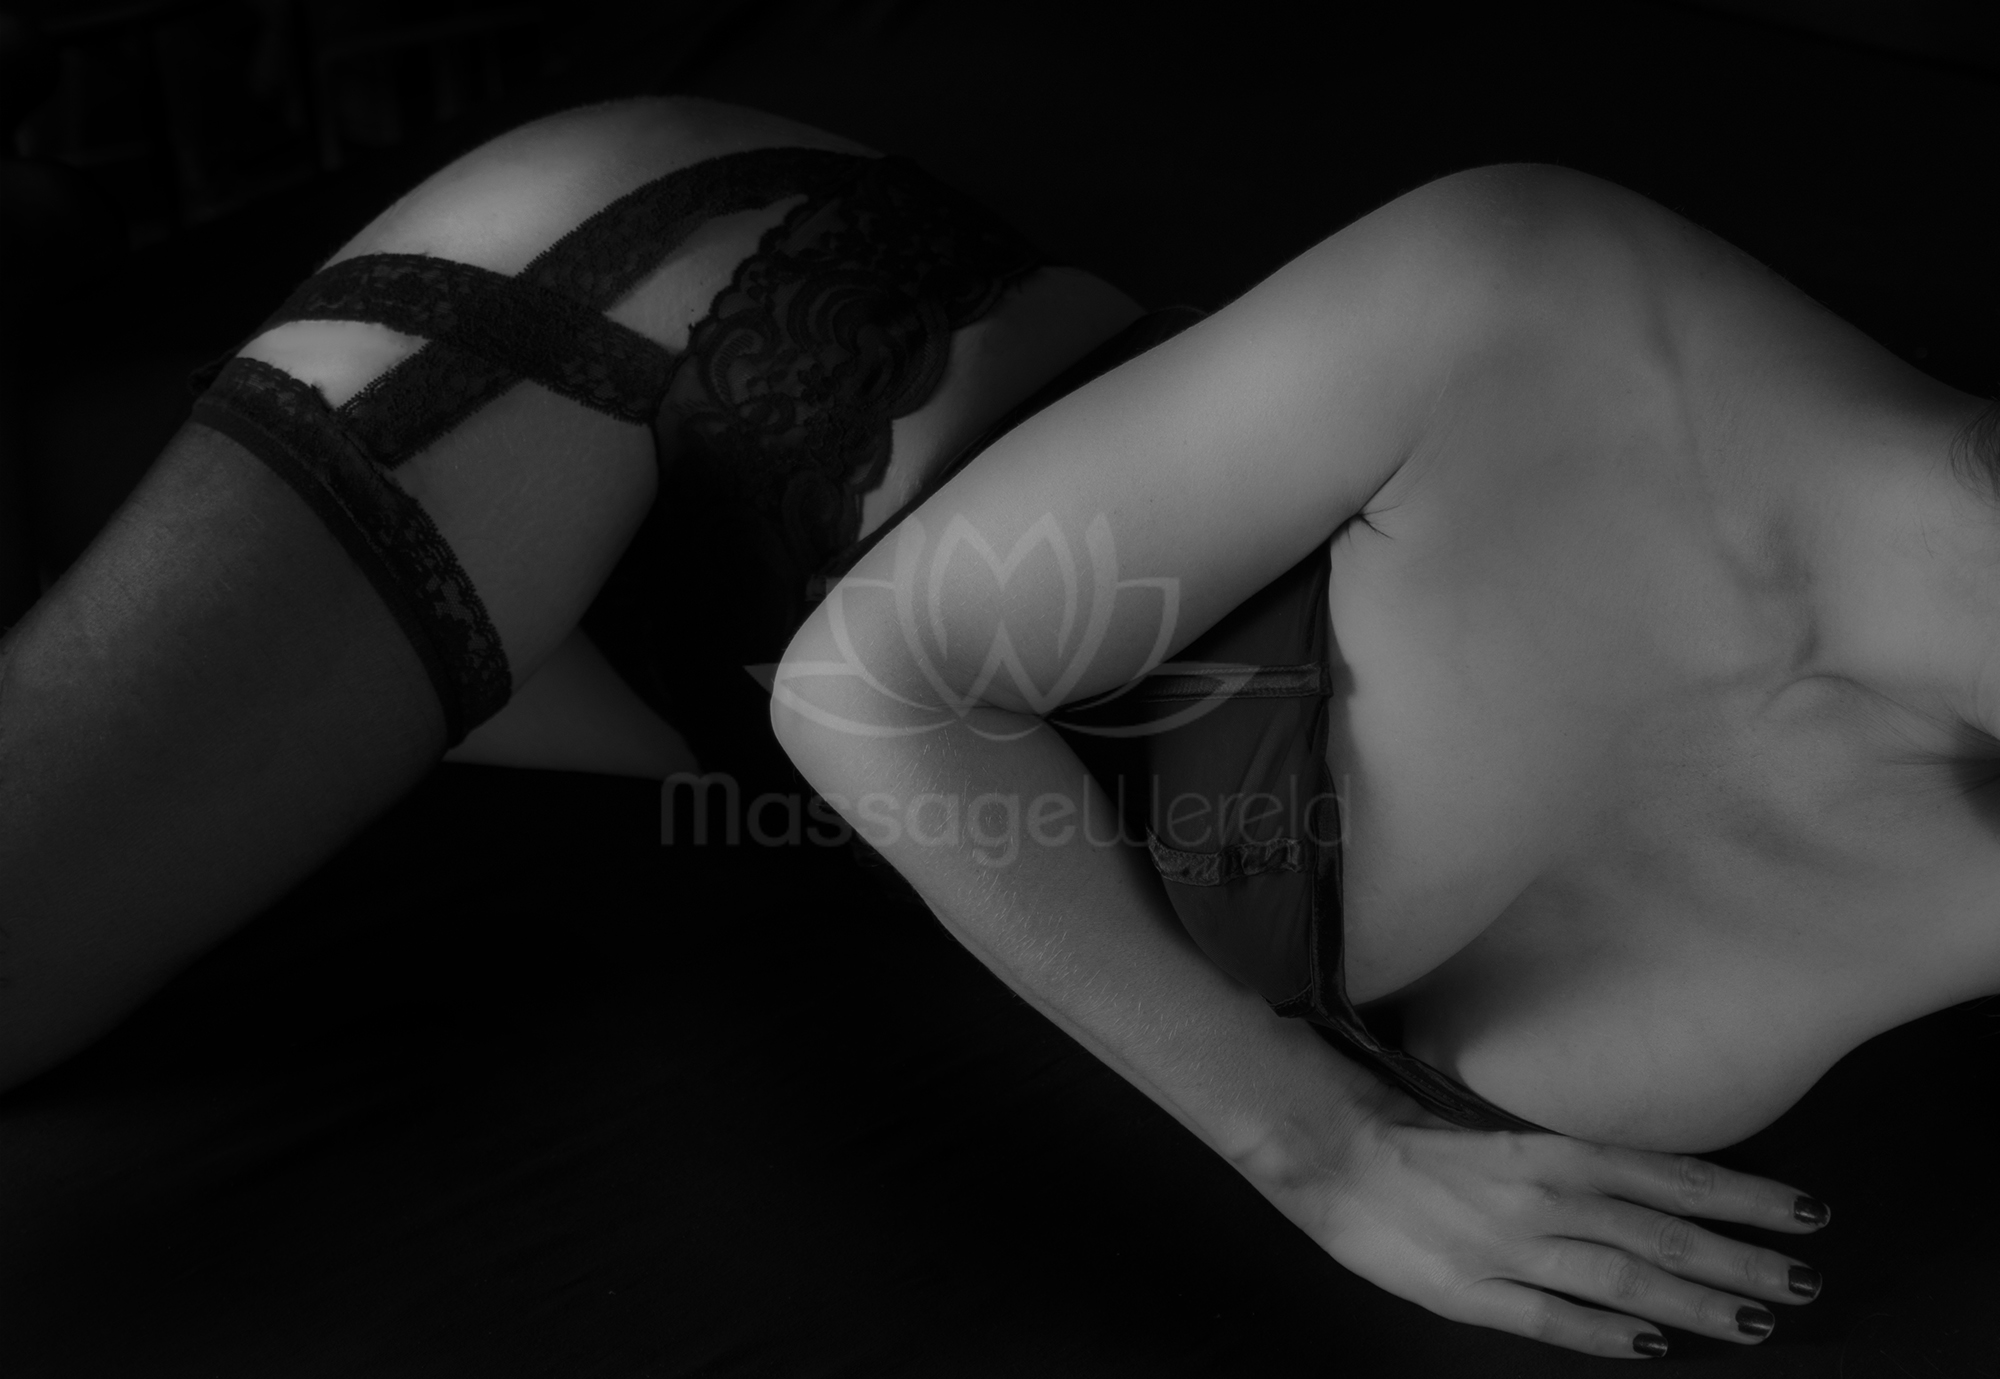 tantra massage heerenveen sex contact amersfoort